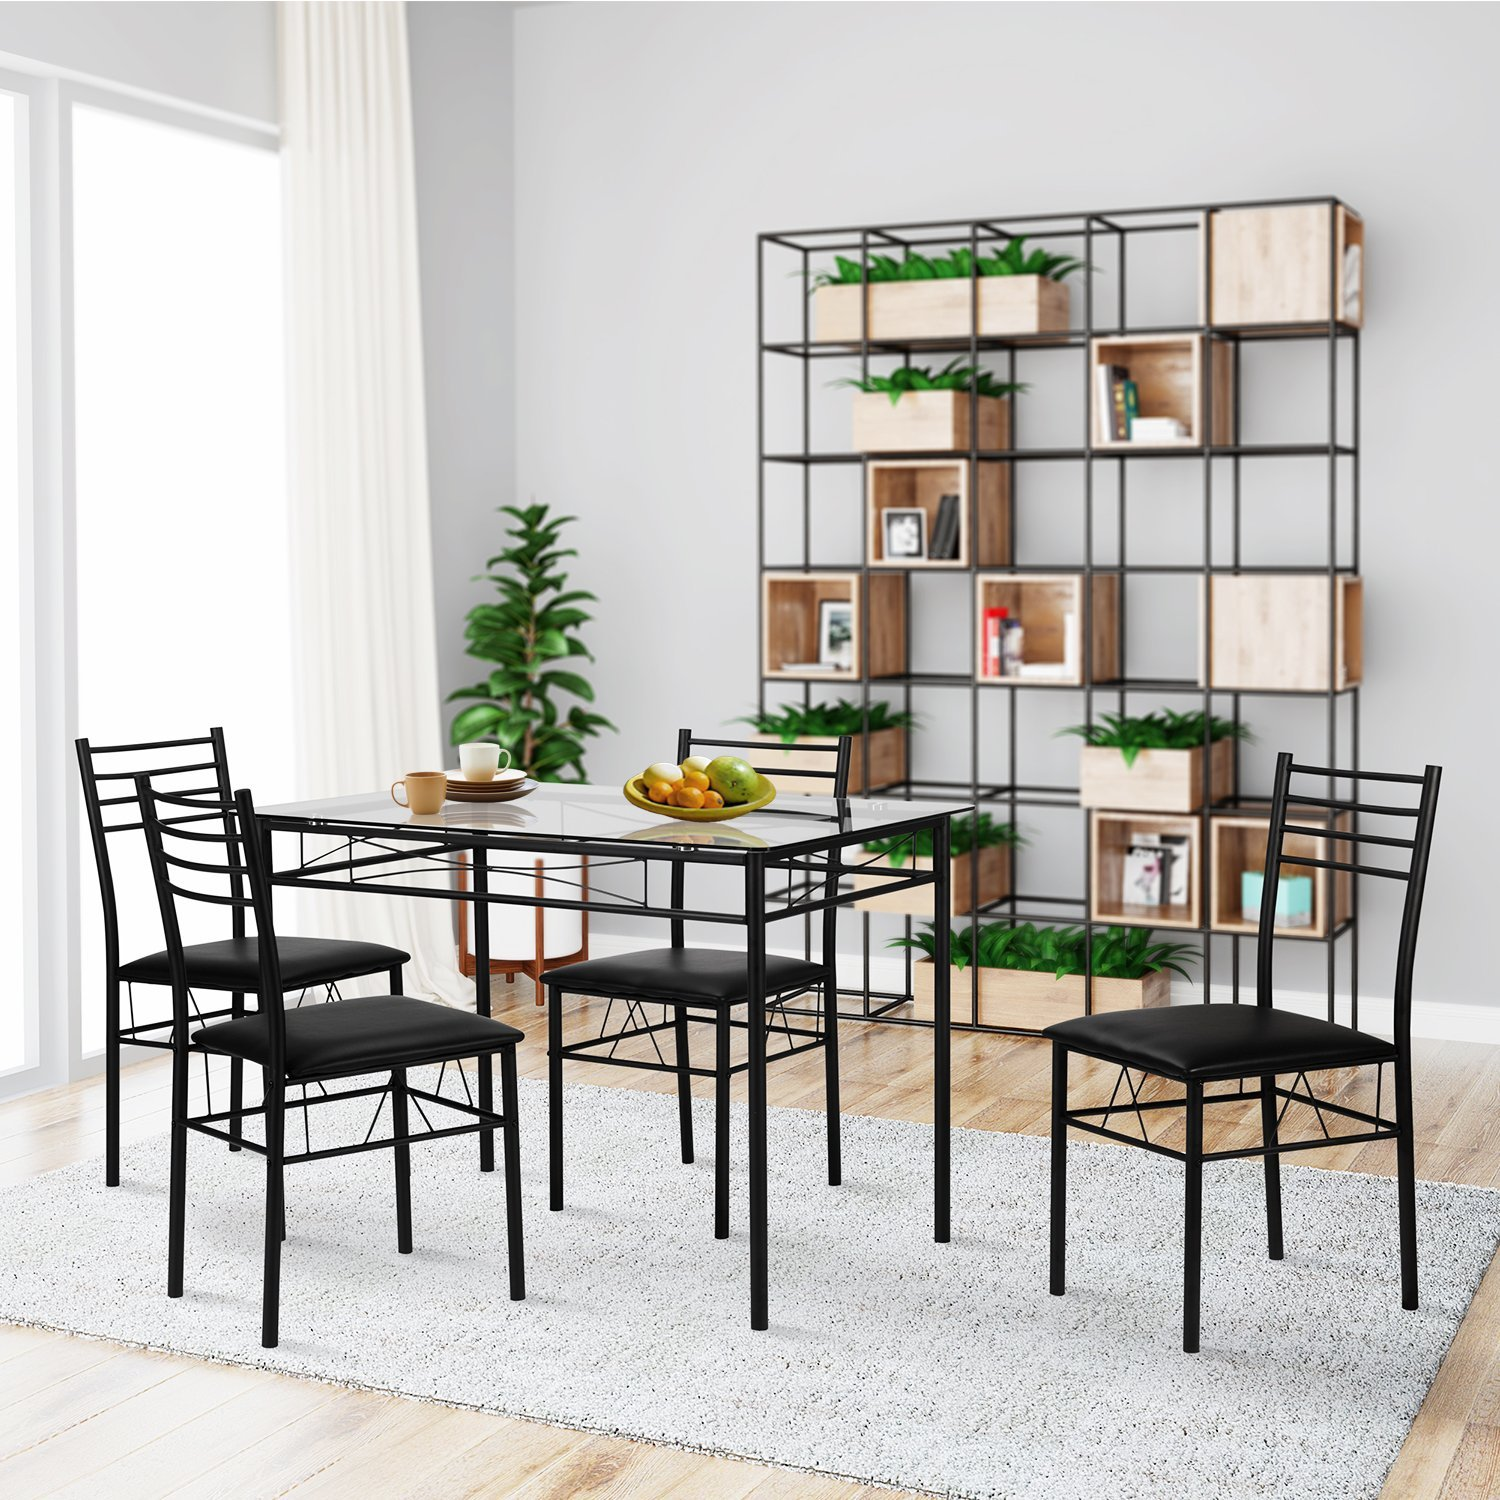 review vecelo dining table with 4 chairs cozy home 101. Black Bedroom Furniture Sets. Home Design Ideas